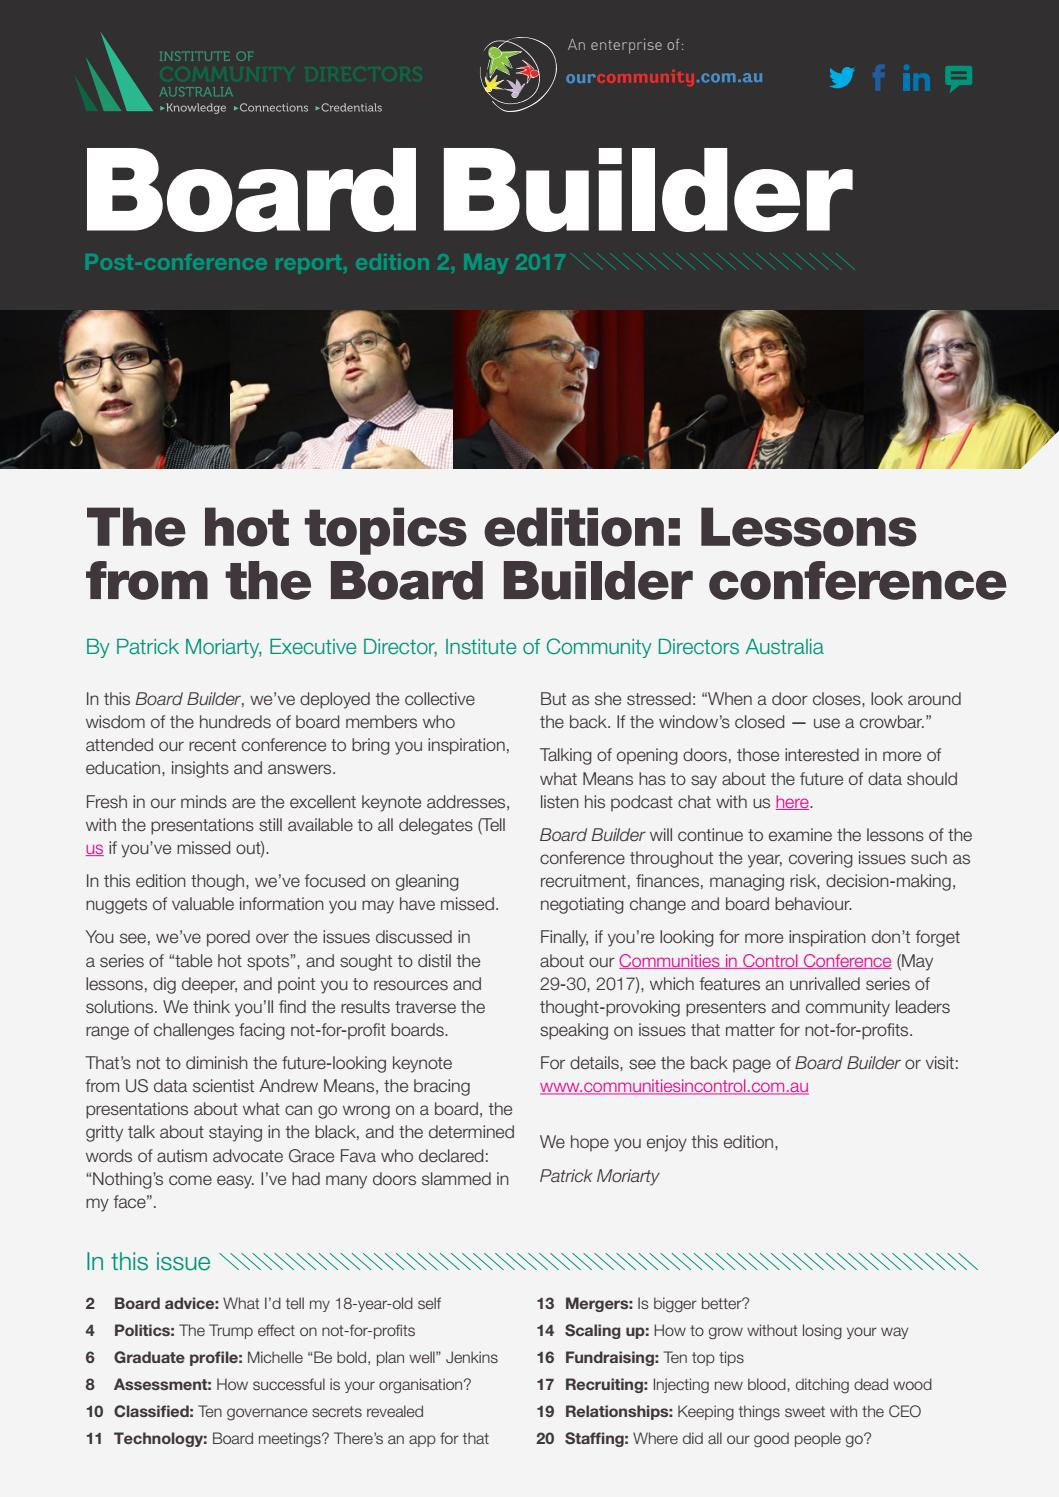 Board Builder: The hot topics edition by Our Community - issuu